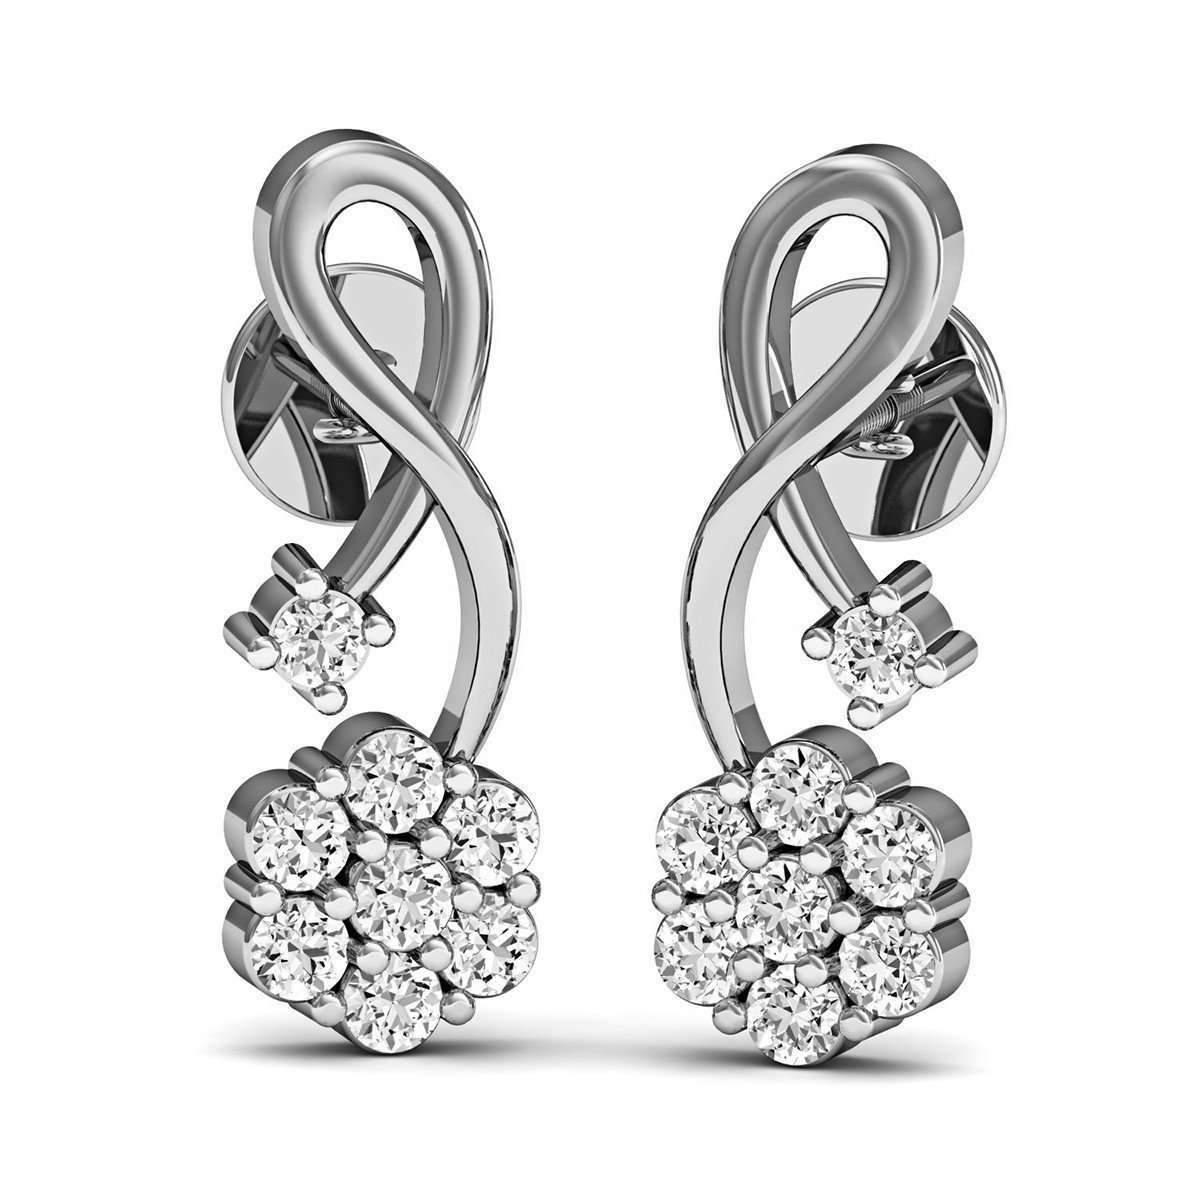 Diamoire Jewels Brilliant Cut Pave Diamond Earrings in 10kt Yellow Gold ENgee1qUW